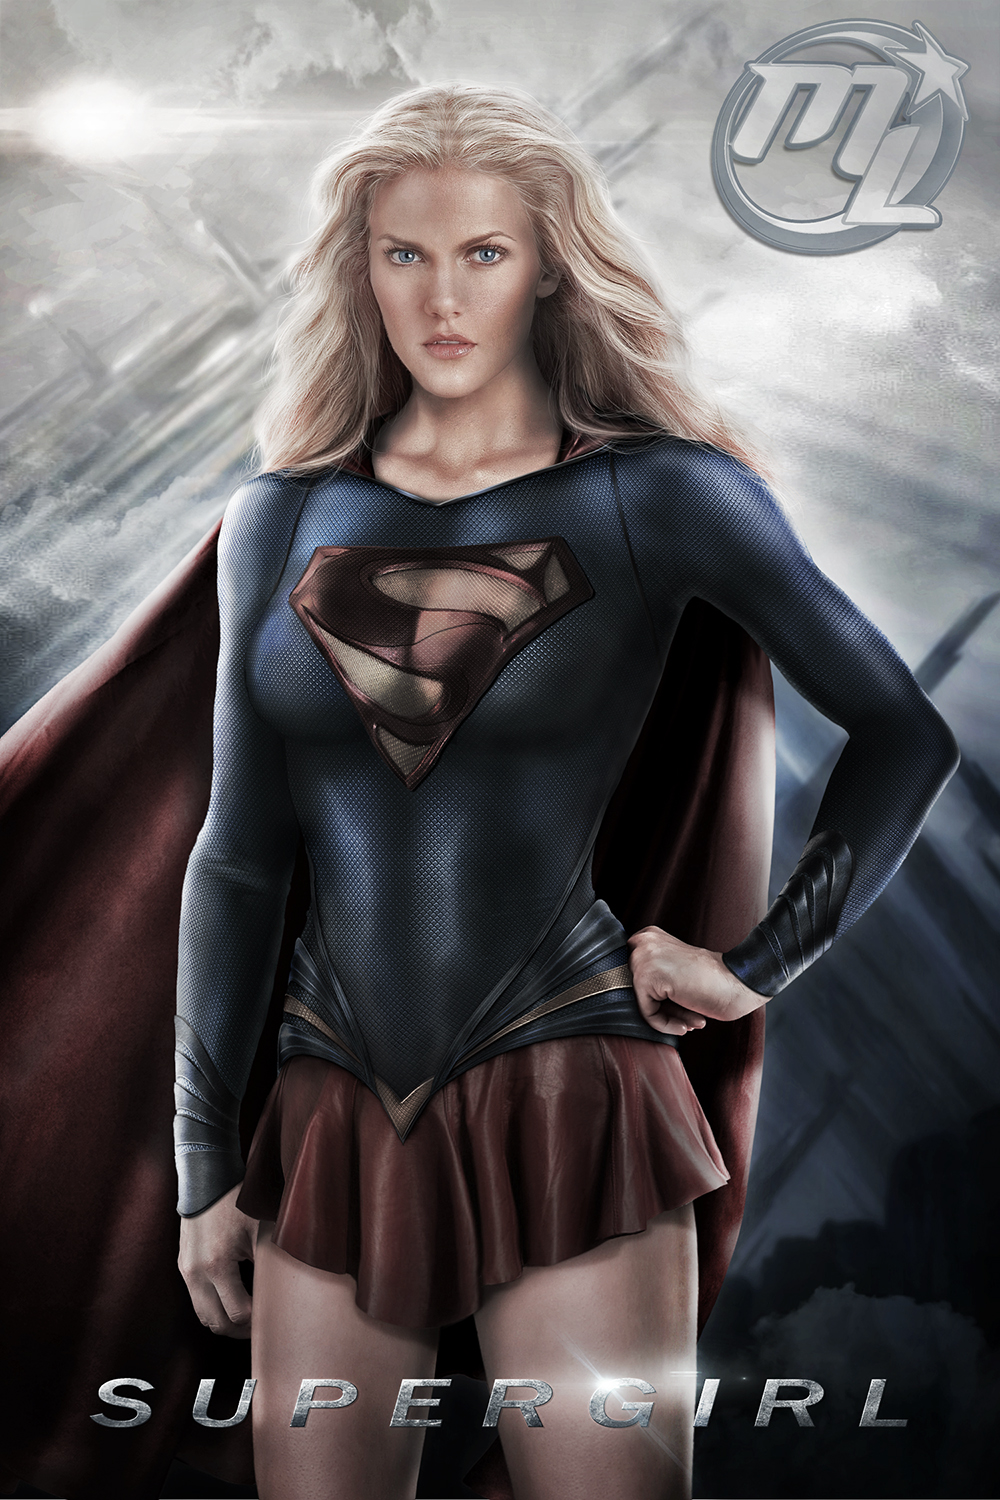 Supergirl from Man of Steel 2013 by Maryneim